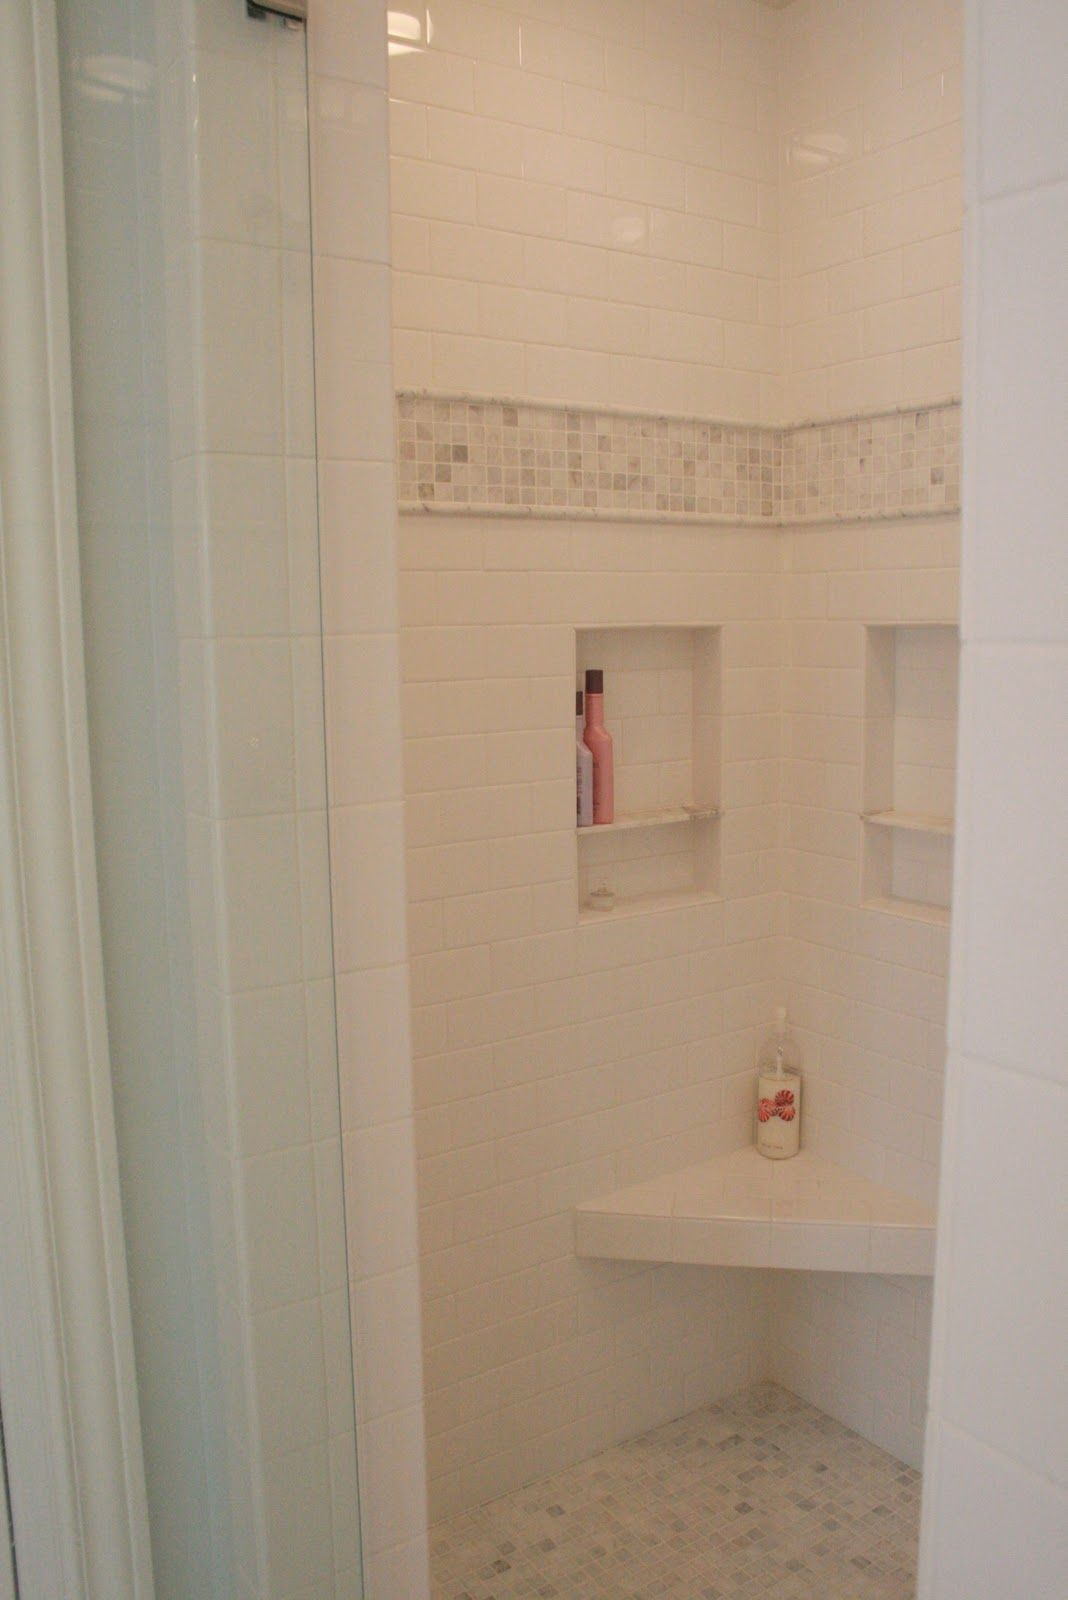 Ceramic bathroom tile acquerelli shower fixtures for sale too - Subway Tile With Carrera Marble Border